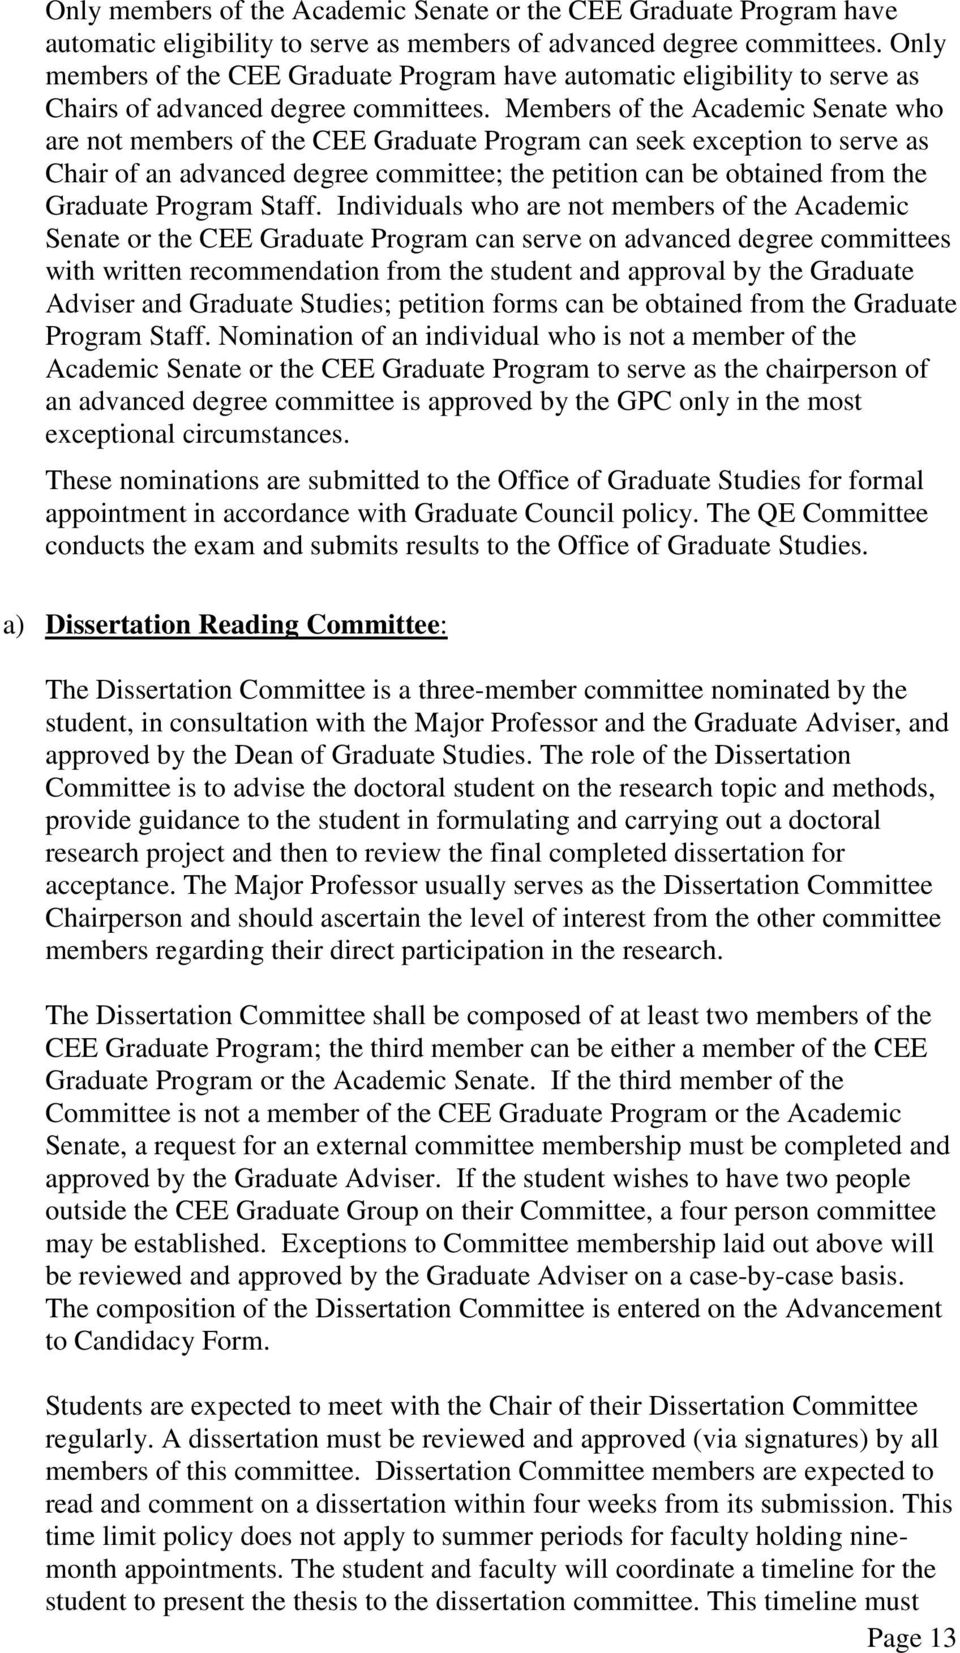 Members of the Academic Senate who are not members of the CEE Graduate Program can seek exception to serve as Chair of an advanced degree committee; the petition can be obtained from the Graduate